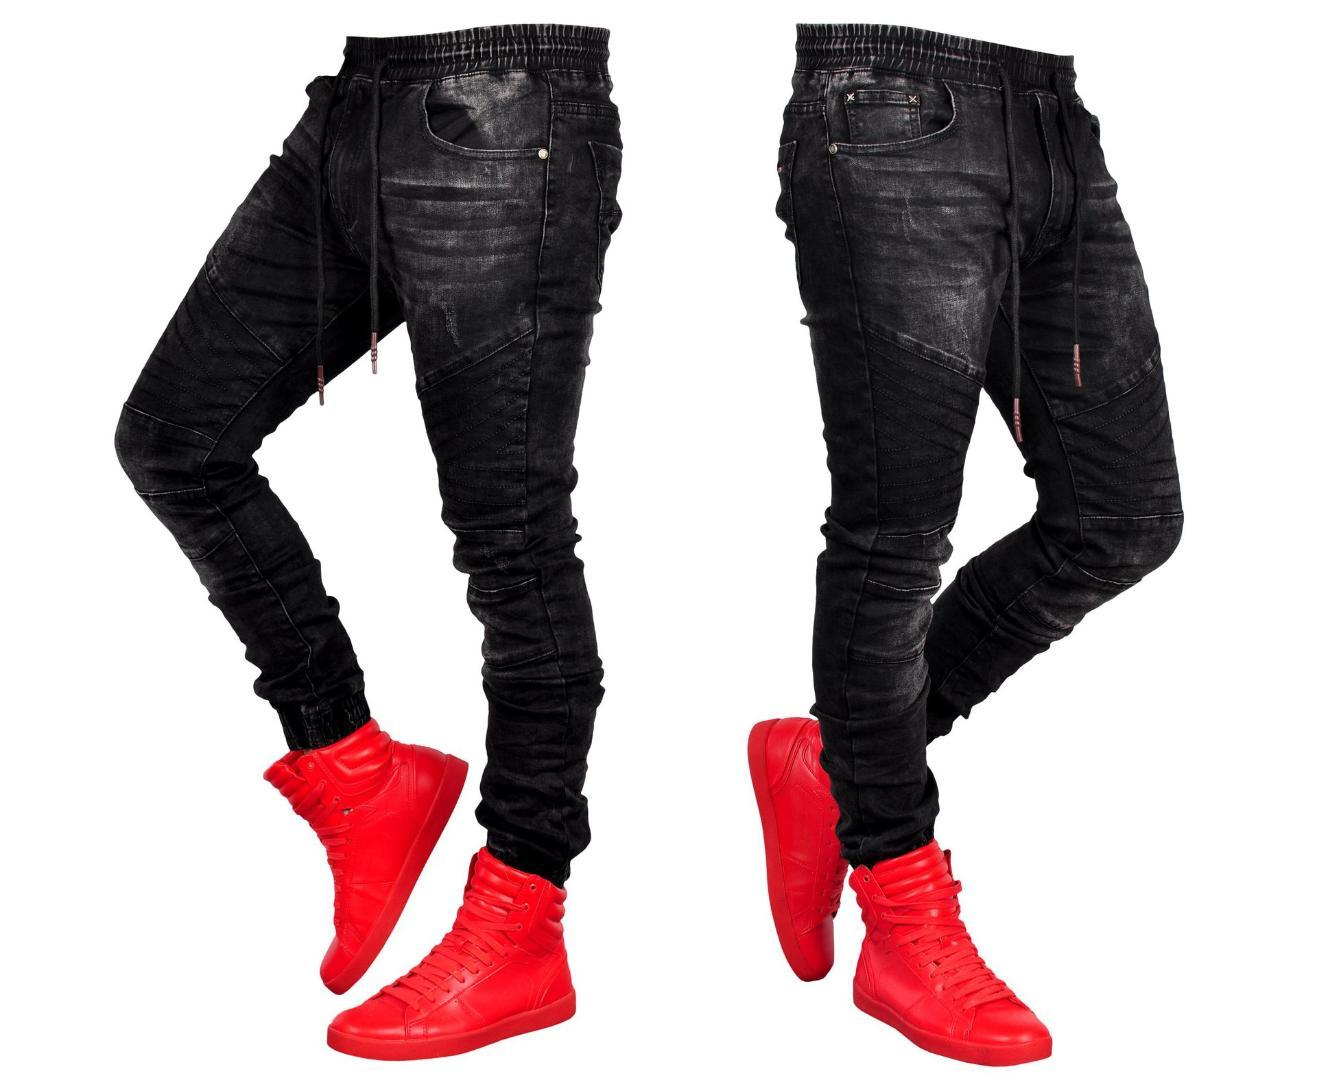 37a6539067b 2019 New Ripped Jeans For Men Slim Biker Zipper Denim Jeans Skinny Frayed  Pants Distressed Rip Trousers Black Drop Shipping From Blueegg